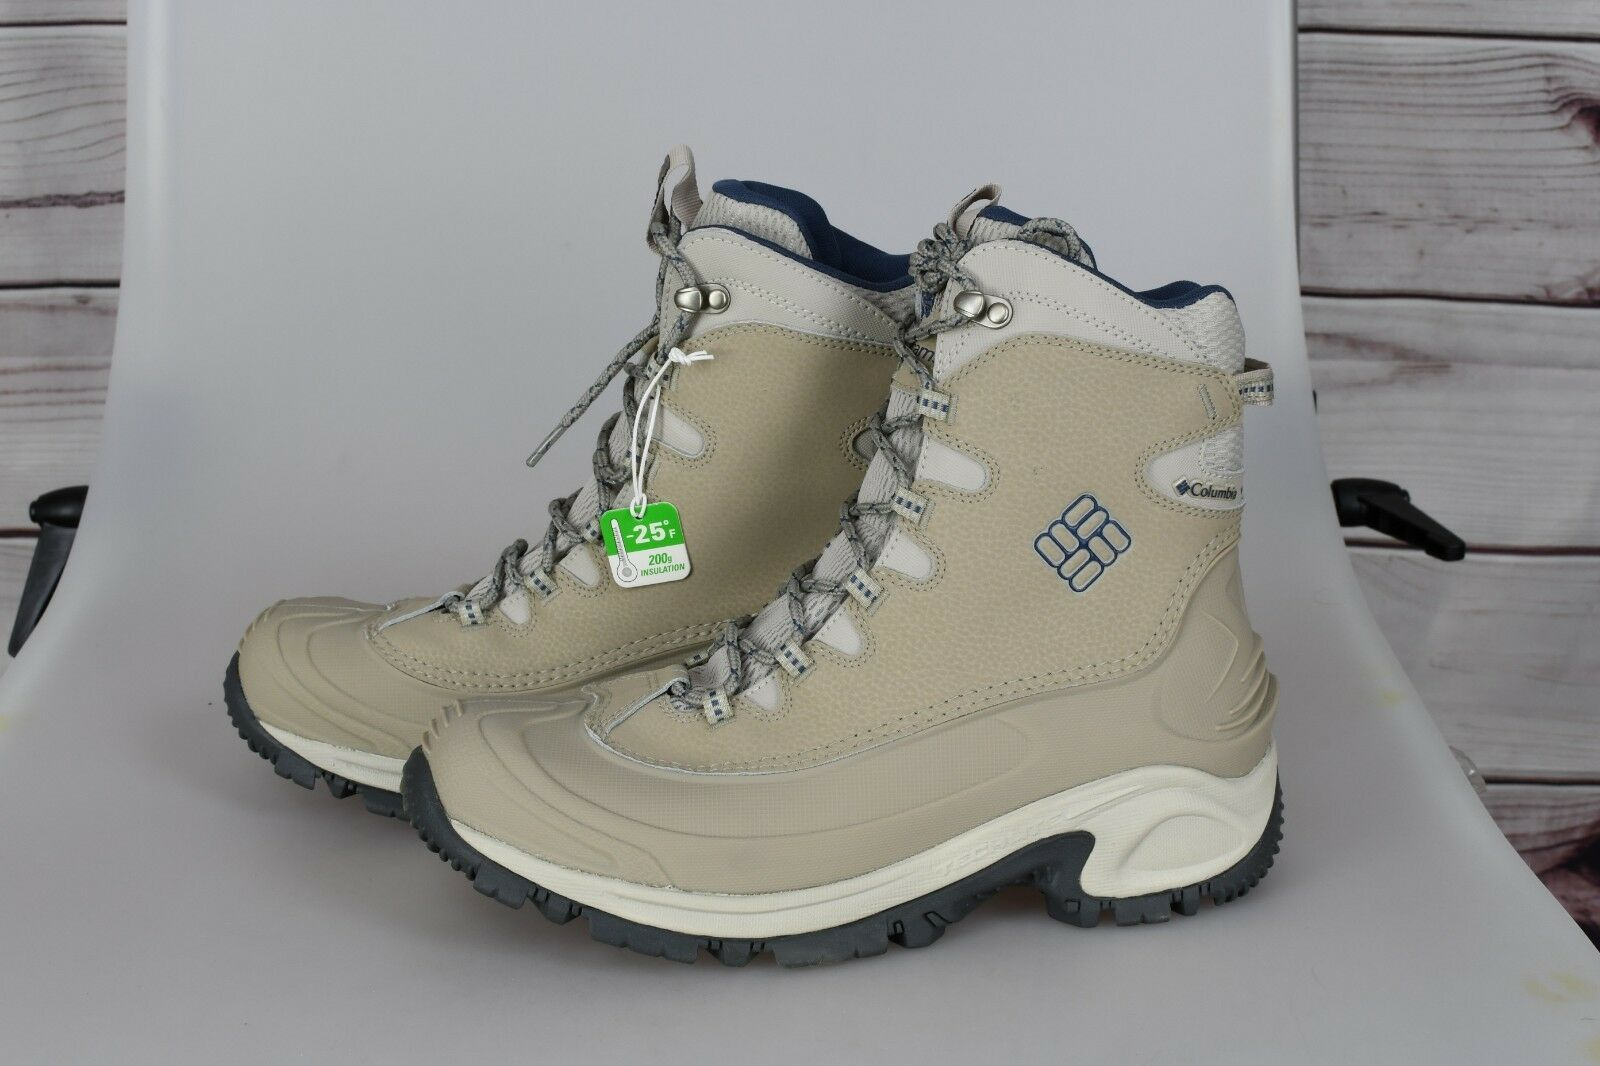 Columbia blancfield Waterproof 200g Insolation femmes Winter bottes -25F -32C